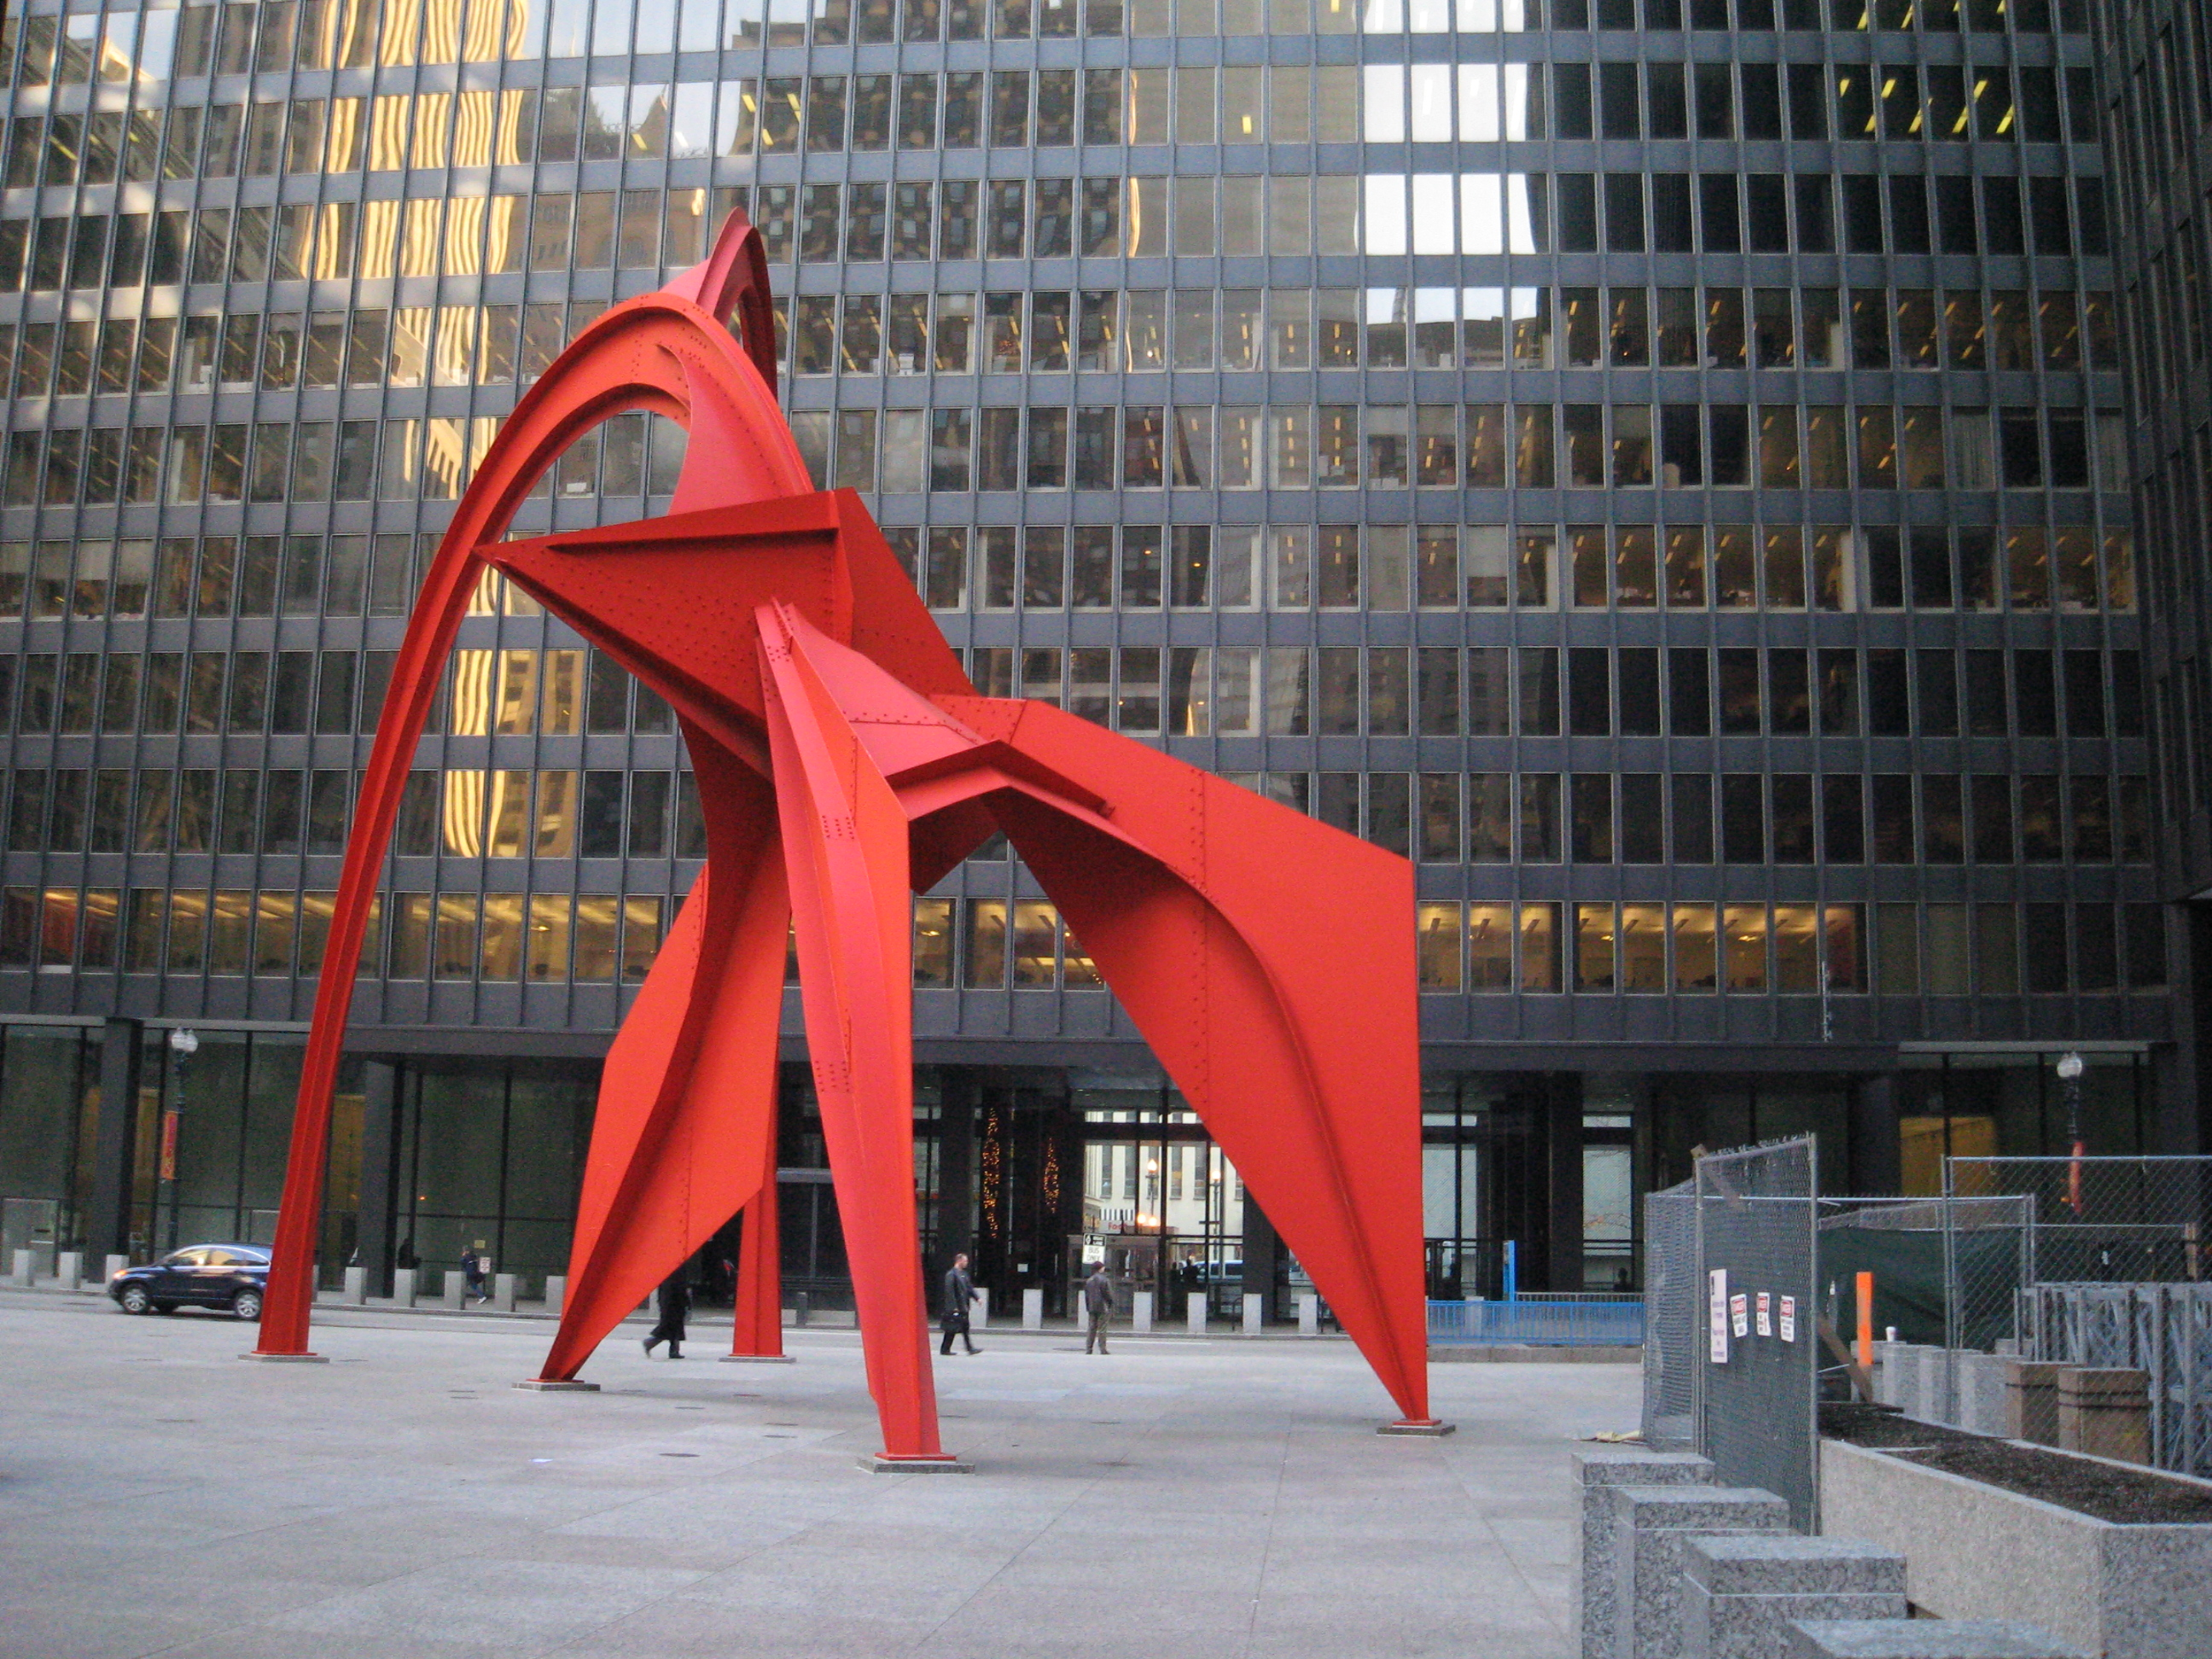 File:Lascar Flamingo sculpture (4608071498).jpg - Wikimedia Commons